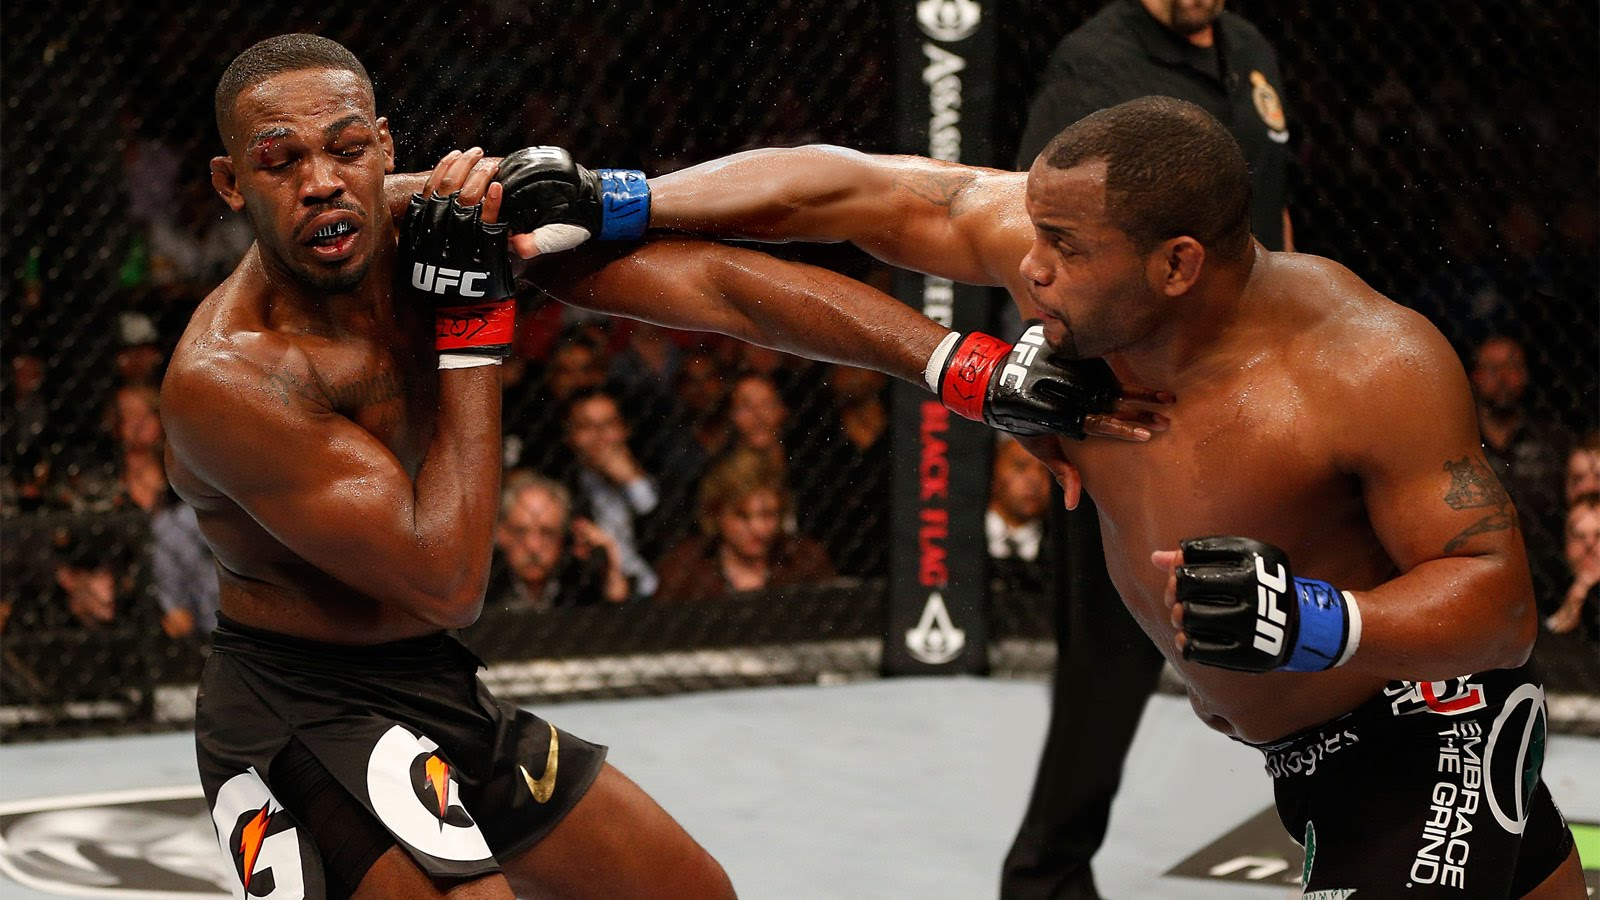 Daniel Cormier vs Jon Jones 2 coming 2016 images